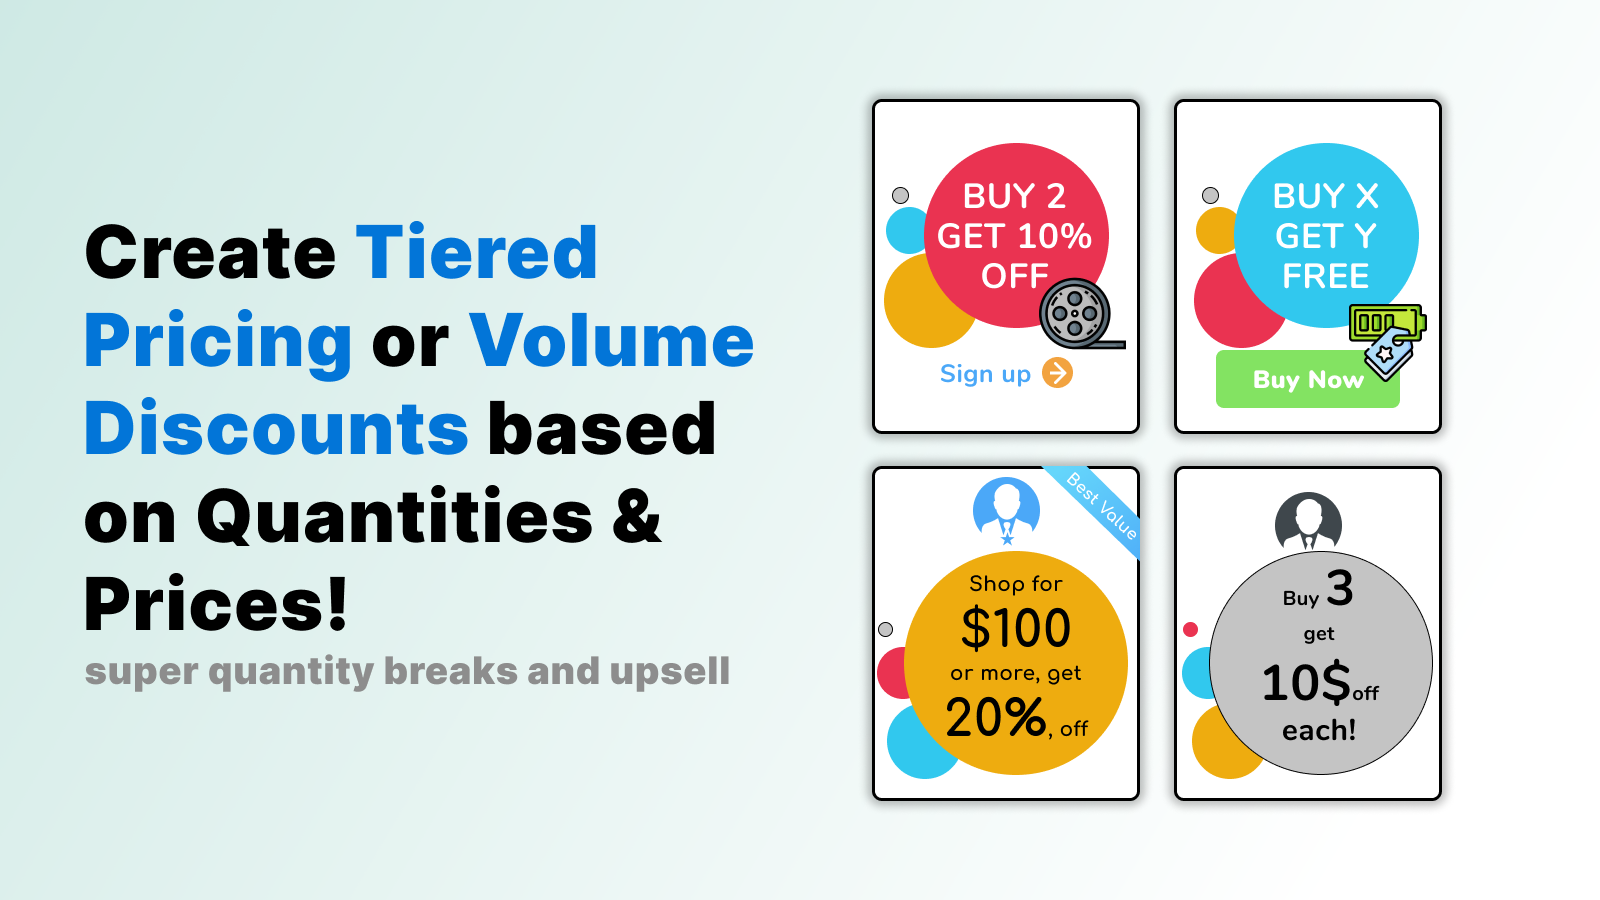 Create Tiered Pricing or Volume Discounts based on prices!